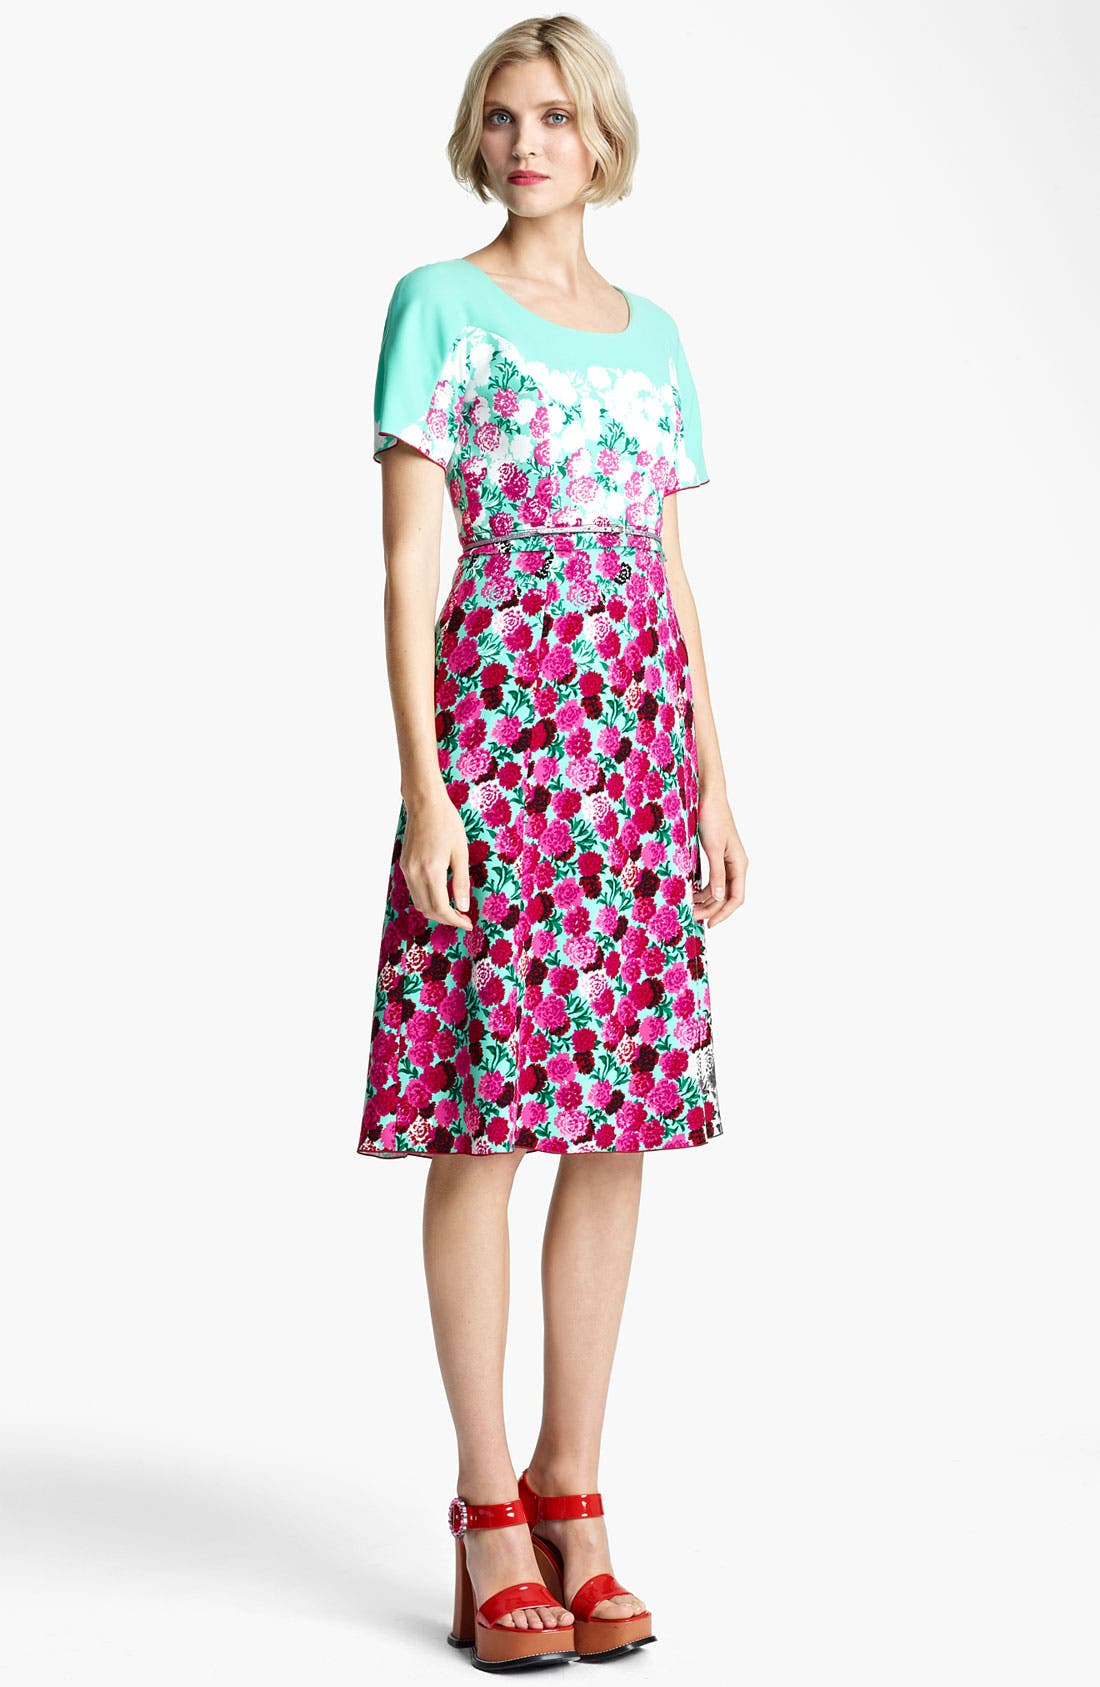 Alternate Image 1 Selected - MARC JACOBS Dégradé Floral Dress